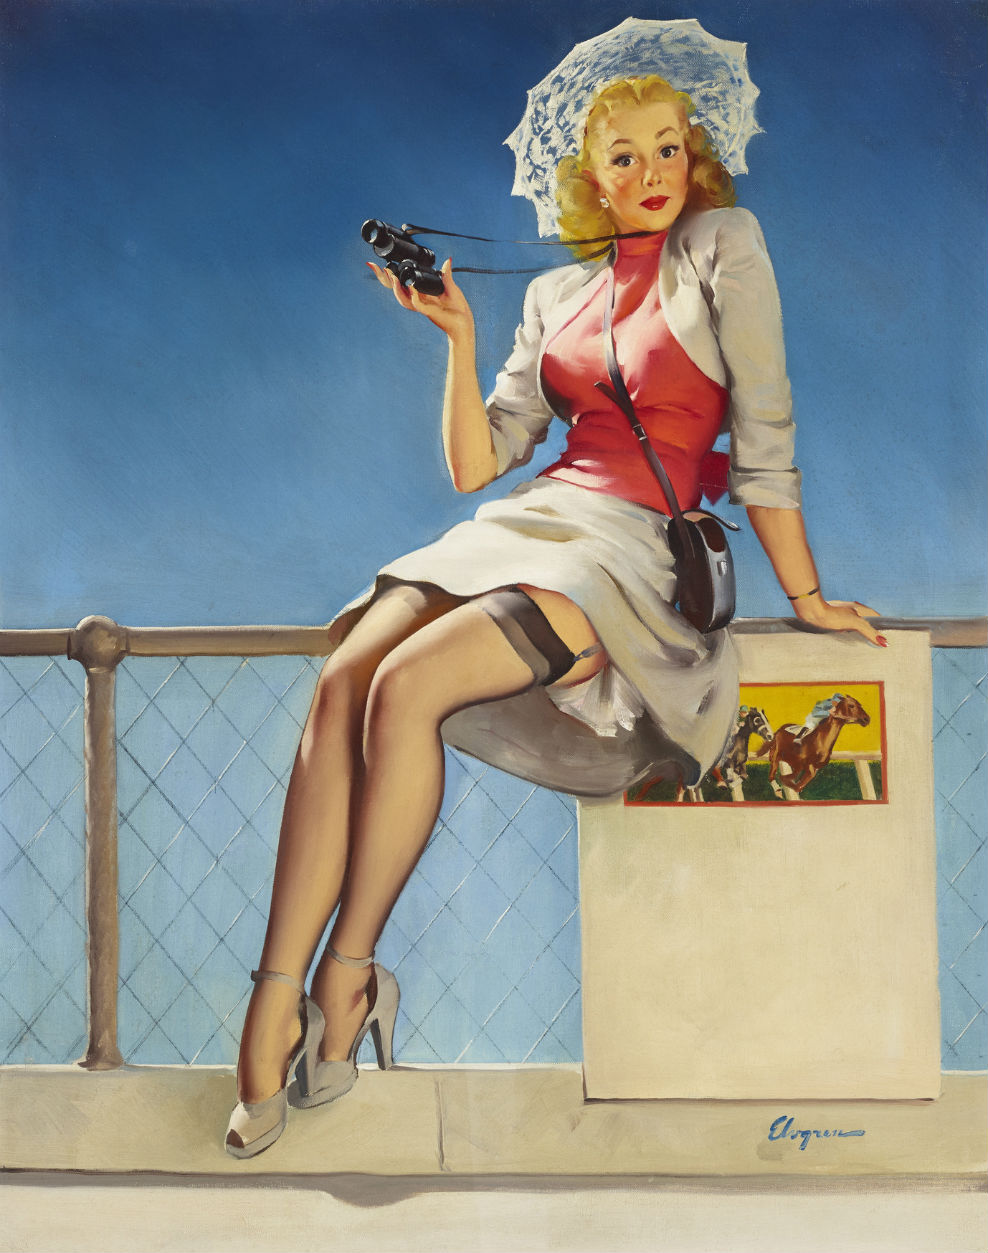 105_1_the_art_of_gil_elvgren_july_2017_gil_elvgren_on_the_right_track_my_money_goes_faster_than_the_horses__wright_auction.jpg